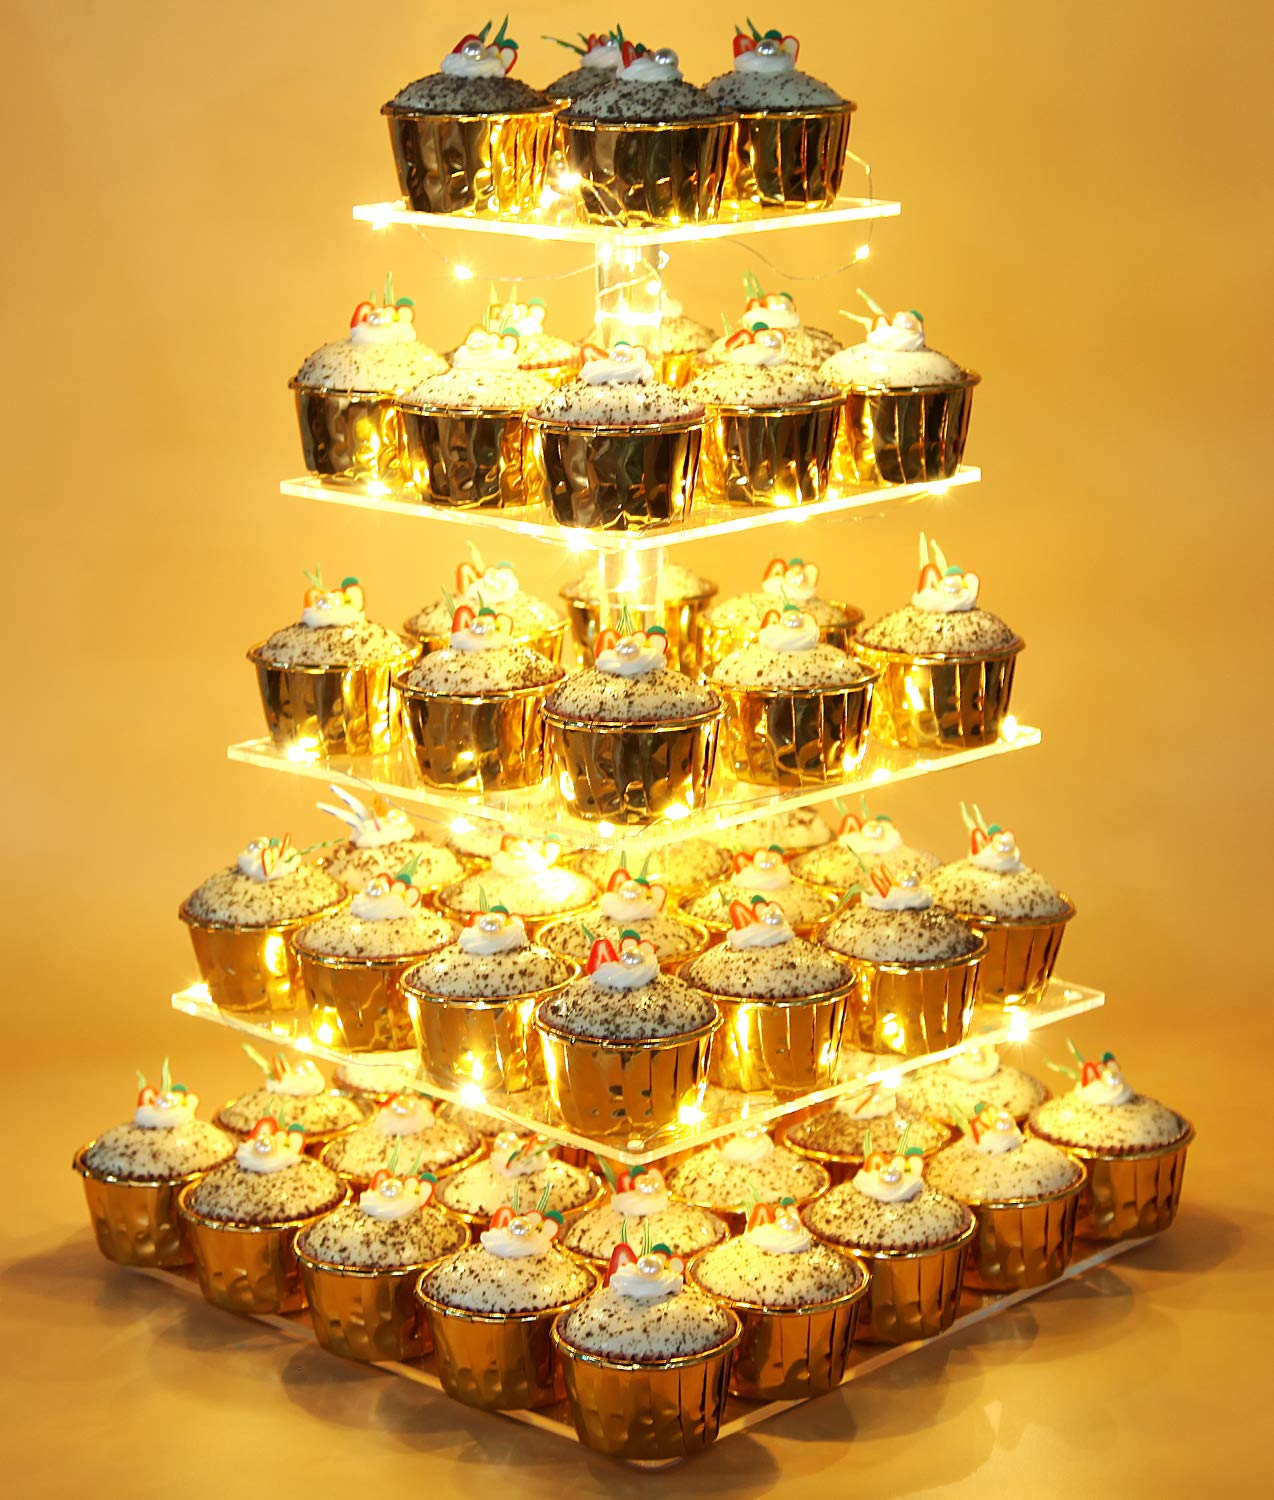 Vdomus Pastry Stand 5 Tier Acrylic Cupcake Display Stand with LED String Lights Dessert Tree Tower for Birthday/Wedding Party by Vdomus